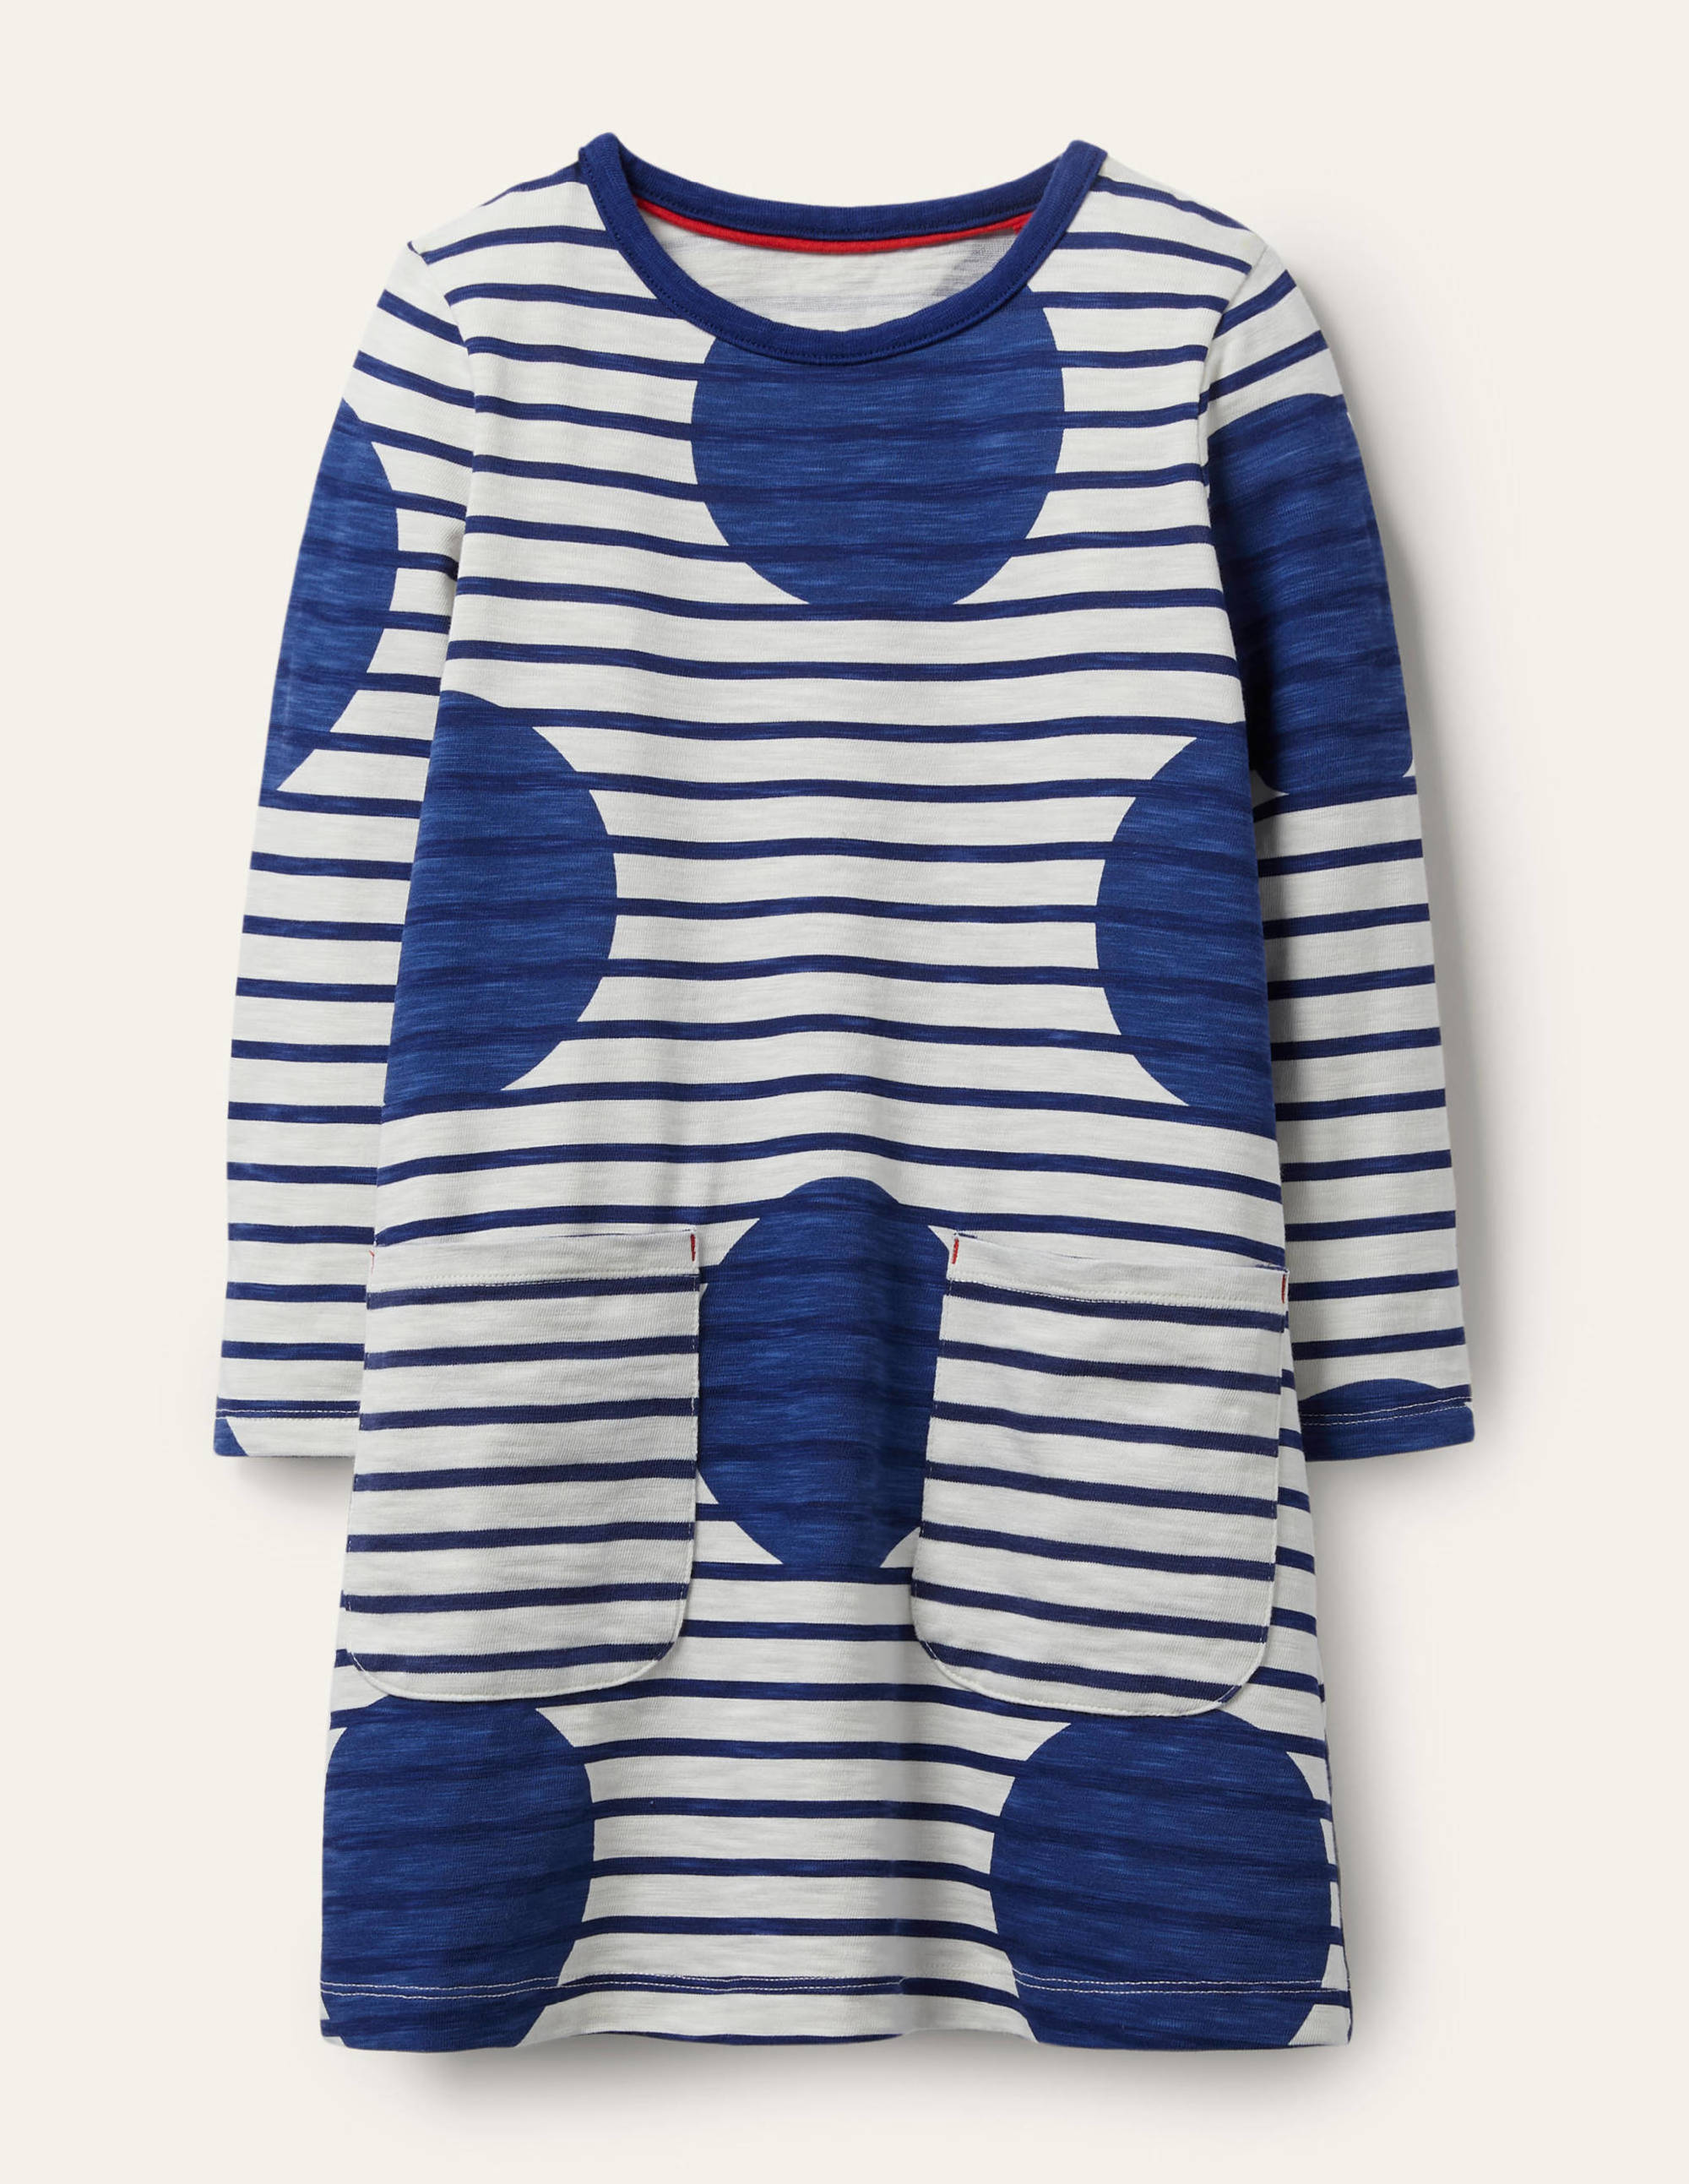 Boden Fun Pocket Jersey Dress - Starboard Blue Jumbo Spot